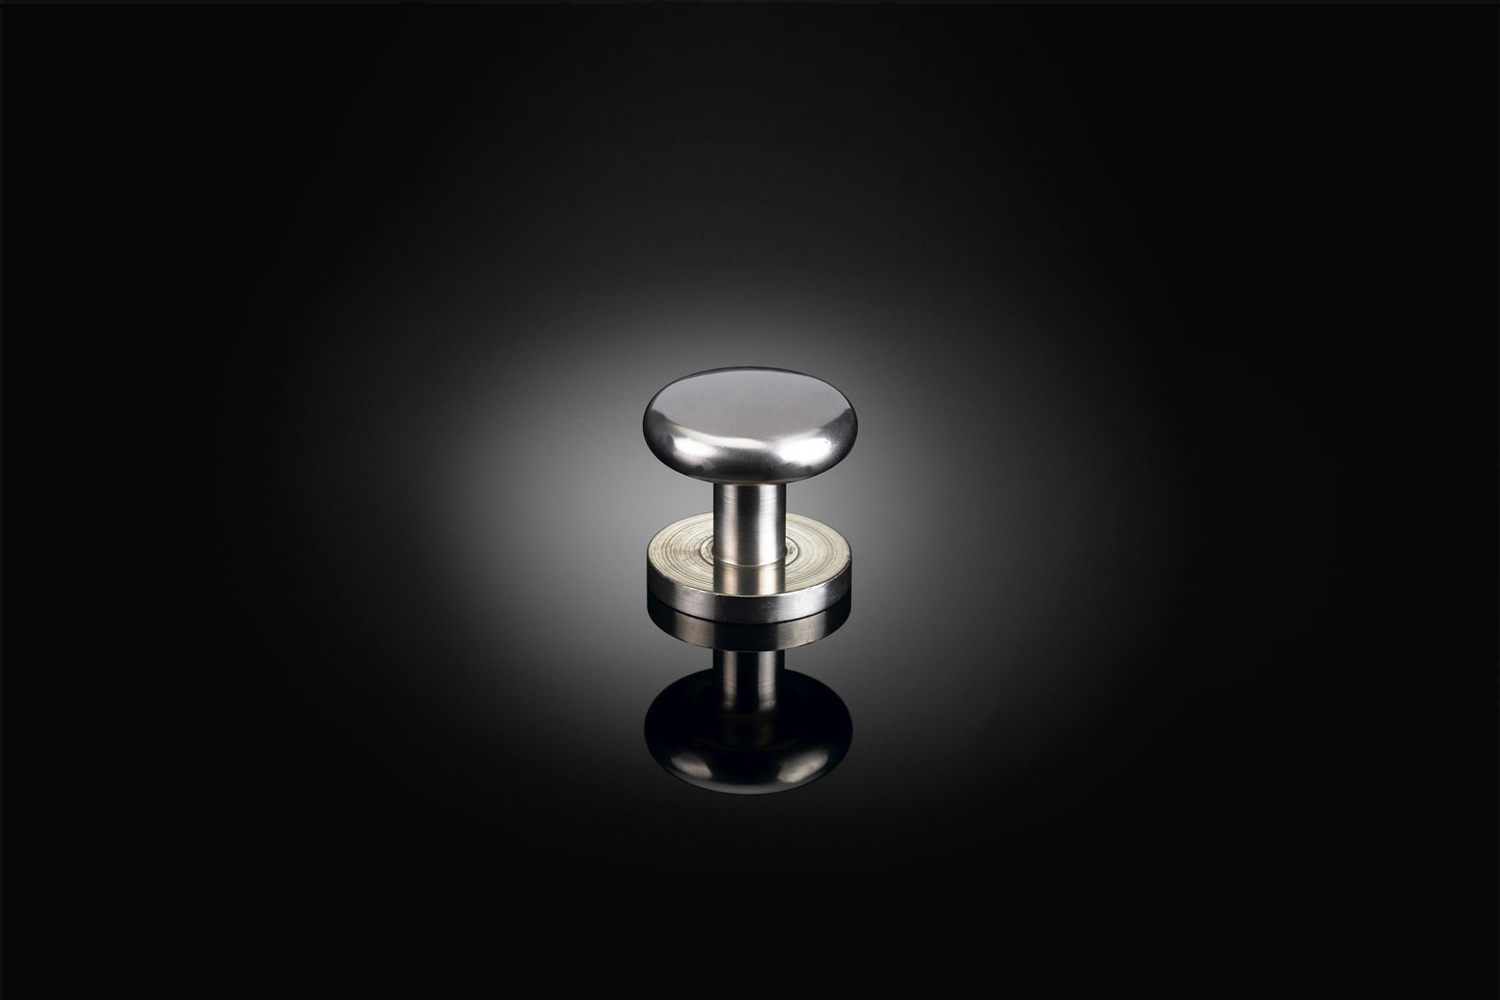 the izé mzc0\1 cabinet knob designed by max bill is available by contacting iz 12